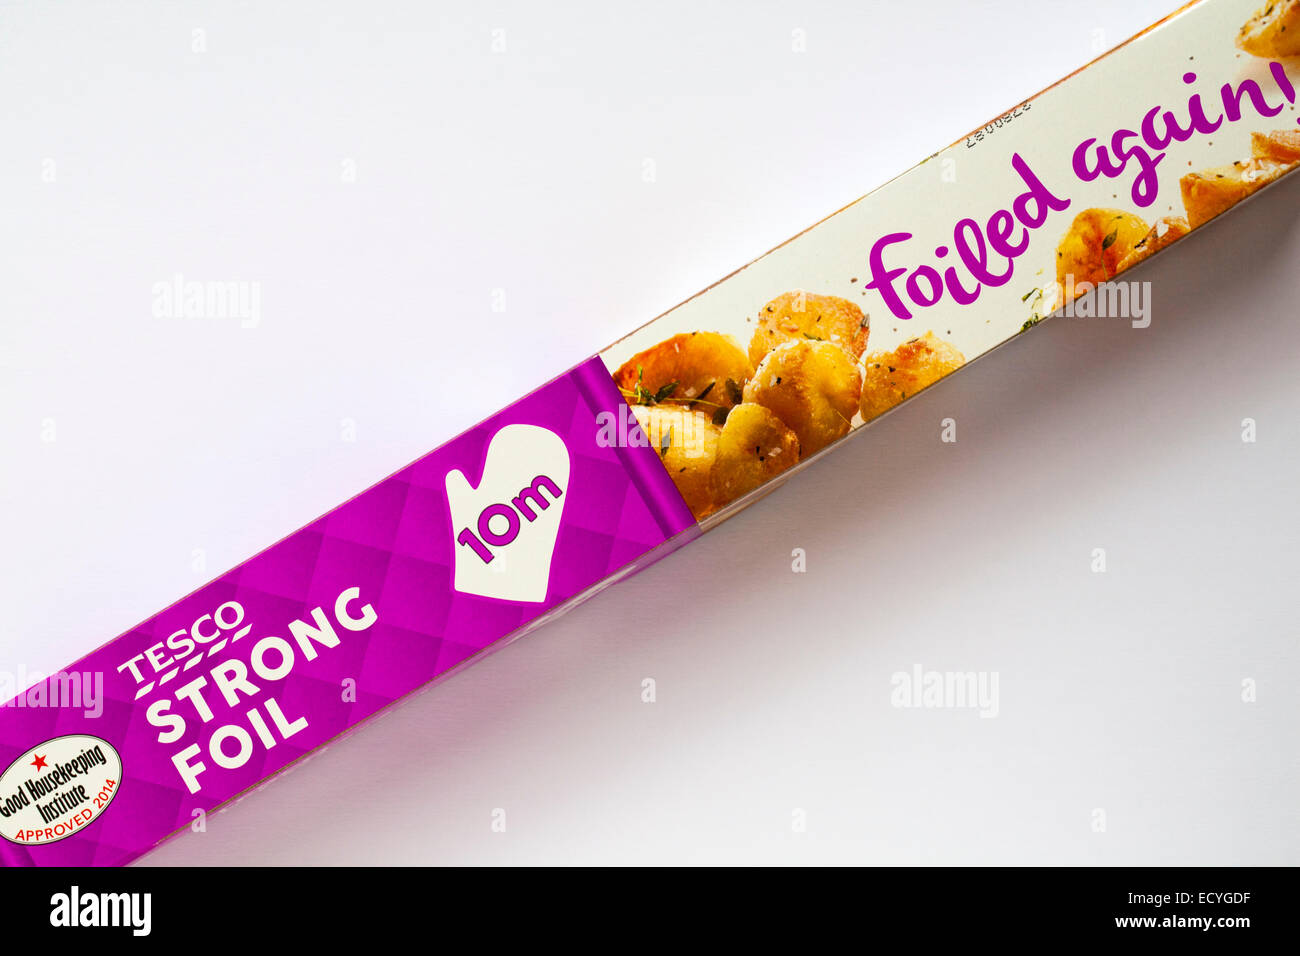 Box of Tesco 10m strong foil set on white background - Stock Image